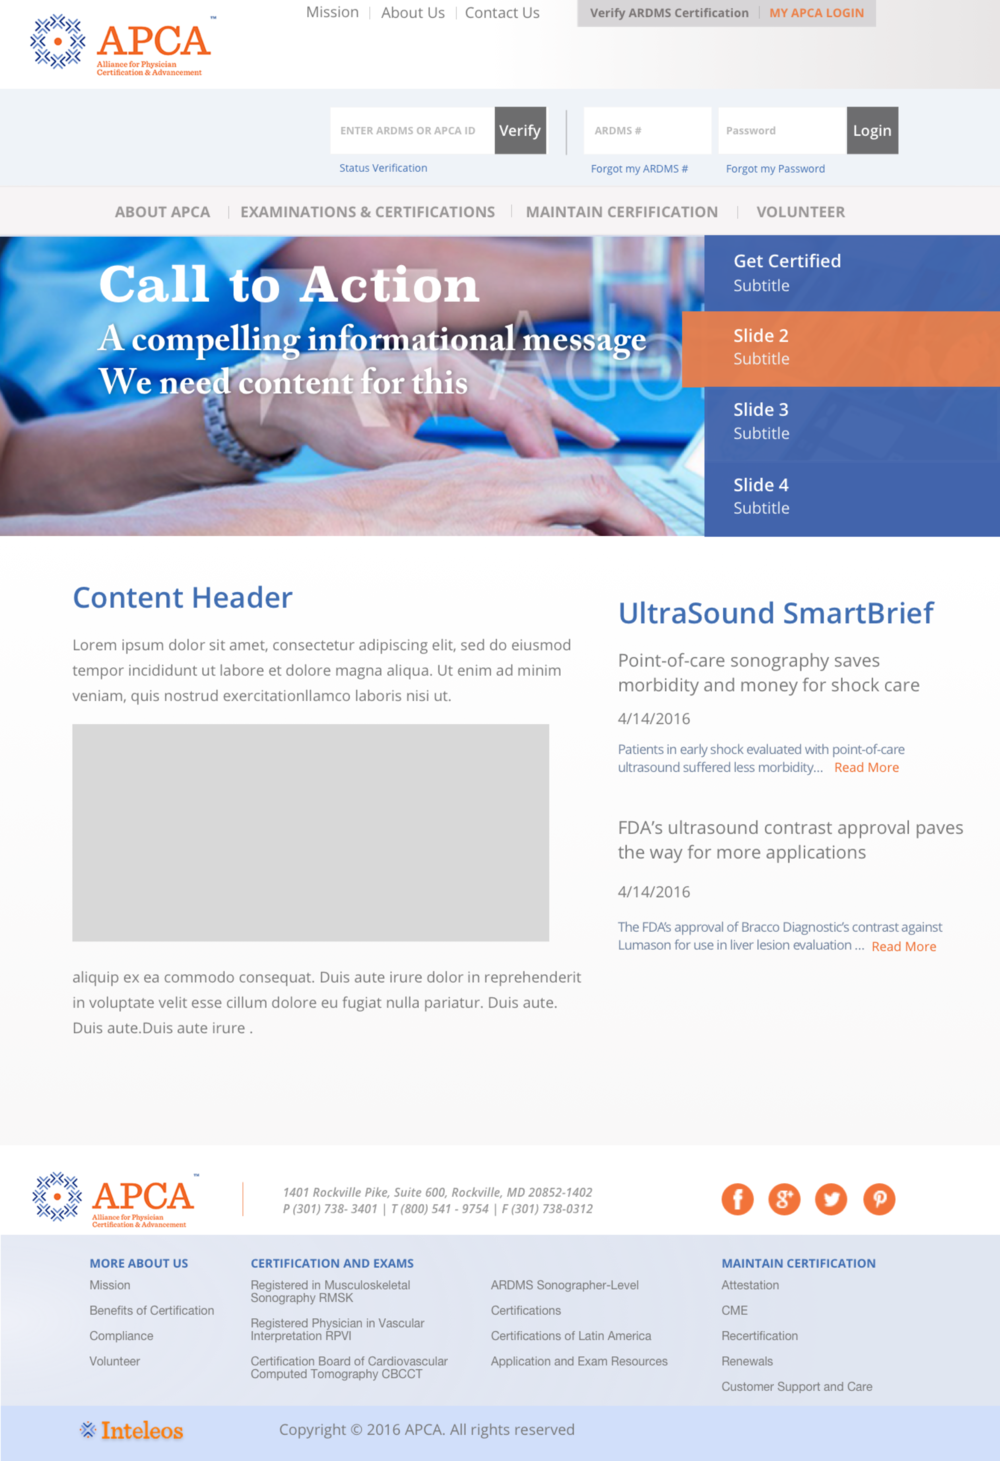 This is a design we created for the header section of the APCA index page